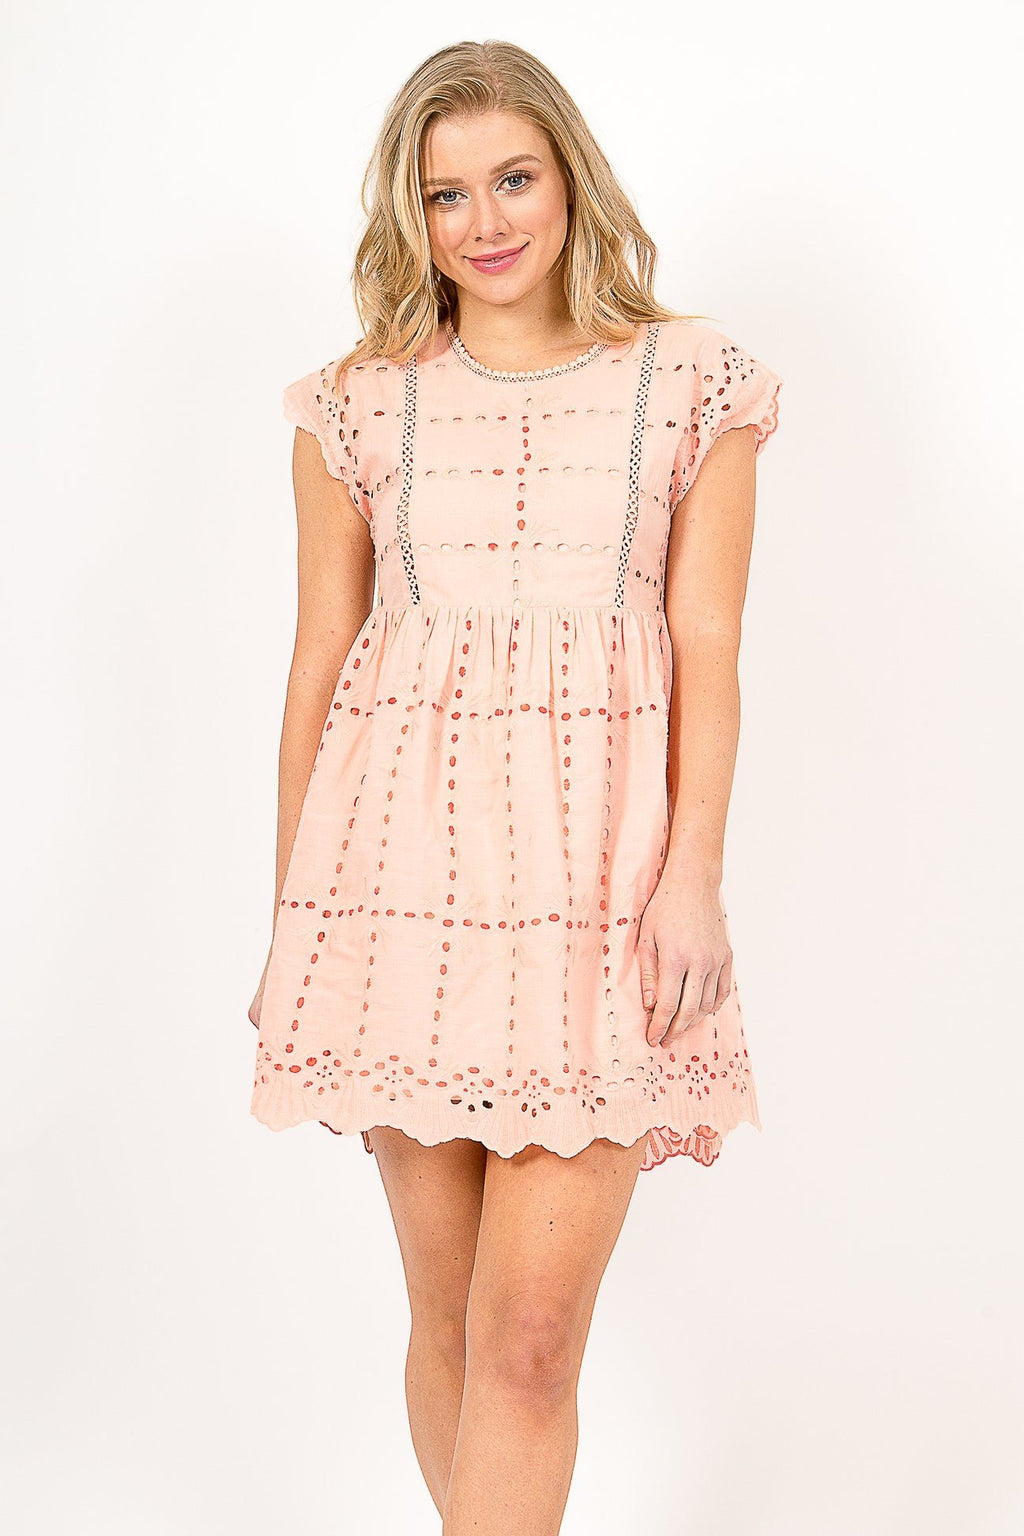 Coral Eyelet Baby Doll Dress